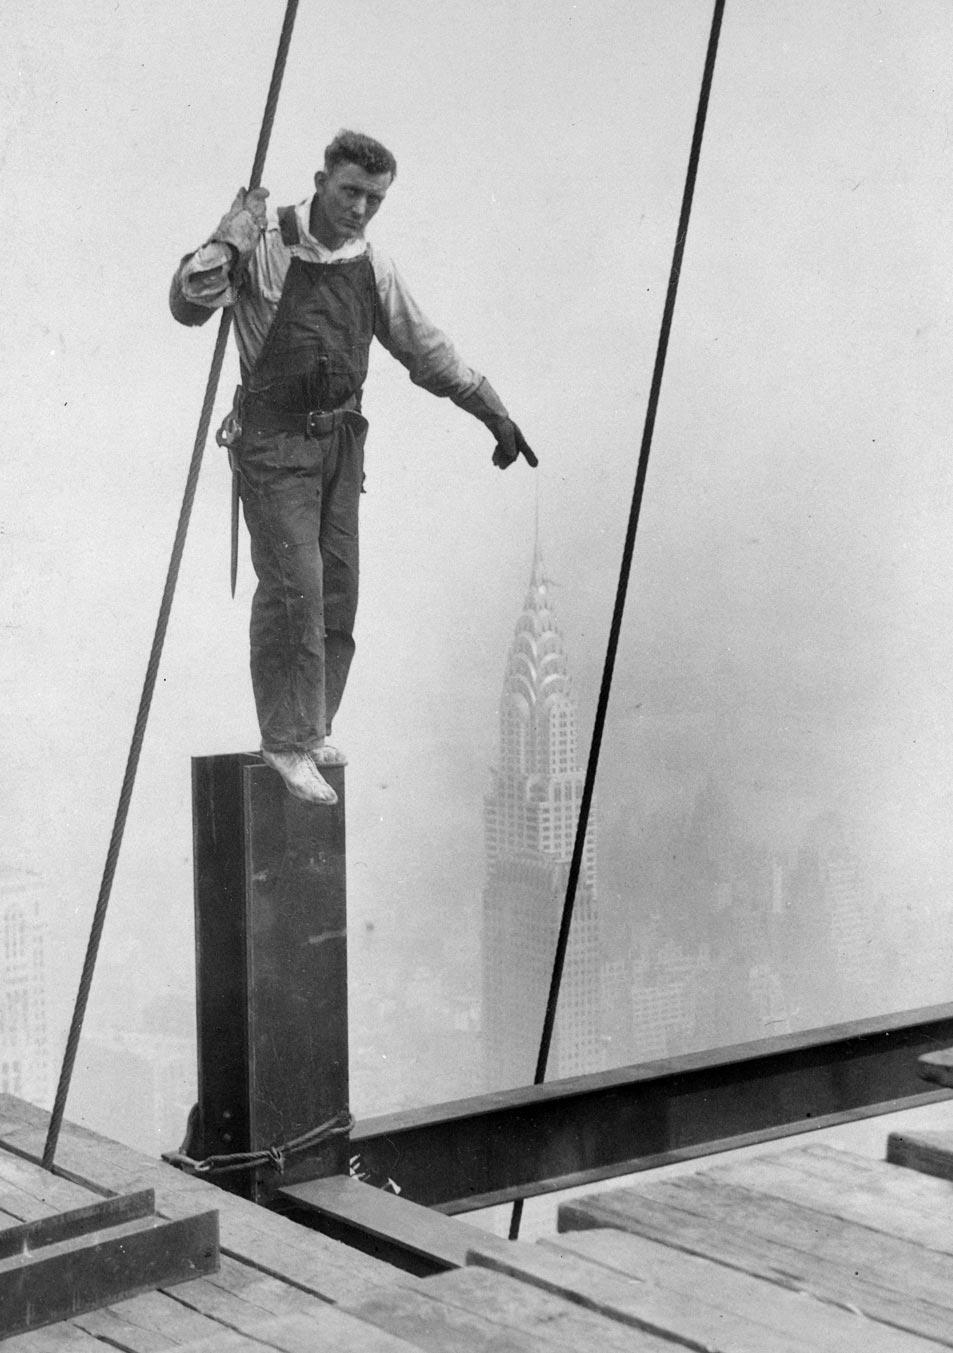 remarkable-empire-state-building-construction-lewis-hine-on-home-design-with-worker-new-york-empire-state-building-chrysler-building-lewis-hine